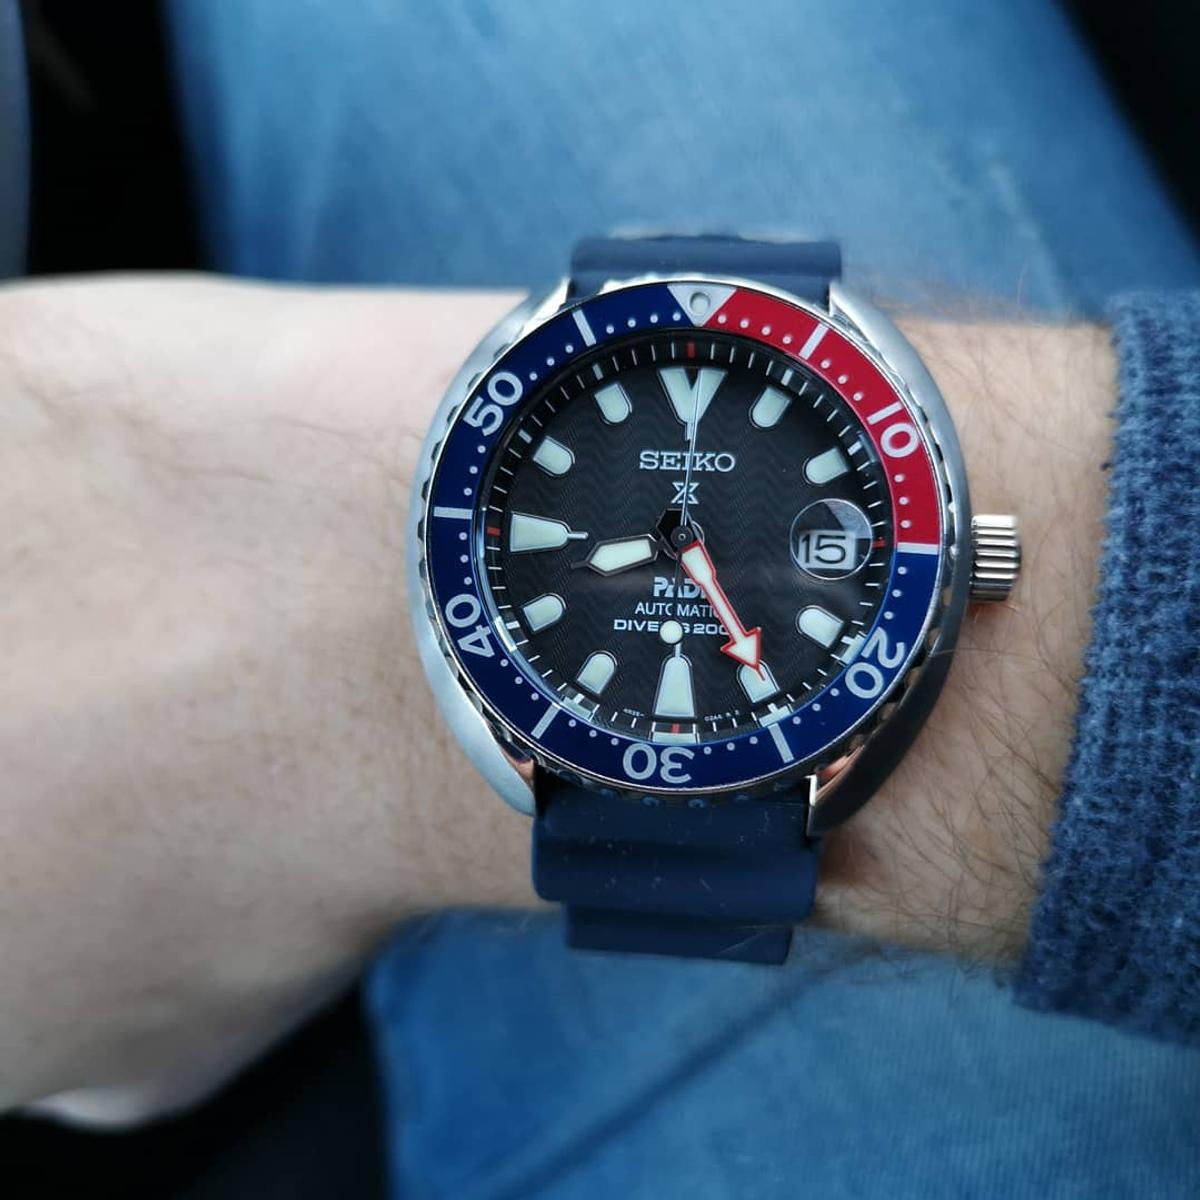 Seiko Srpc41k1 Padi Automatic Watch In Three Rivers For 295 00 For